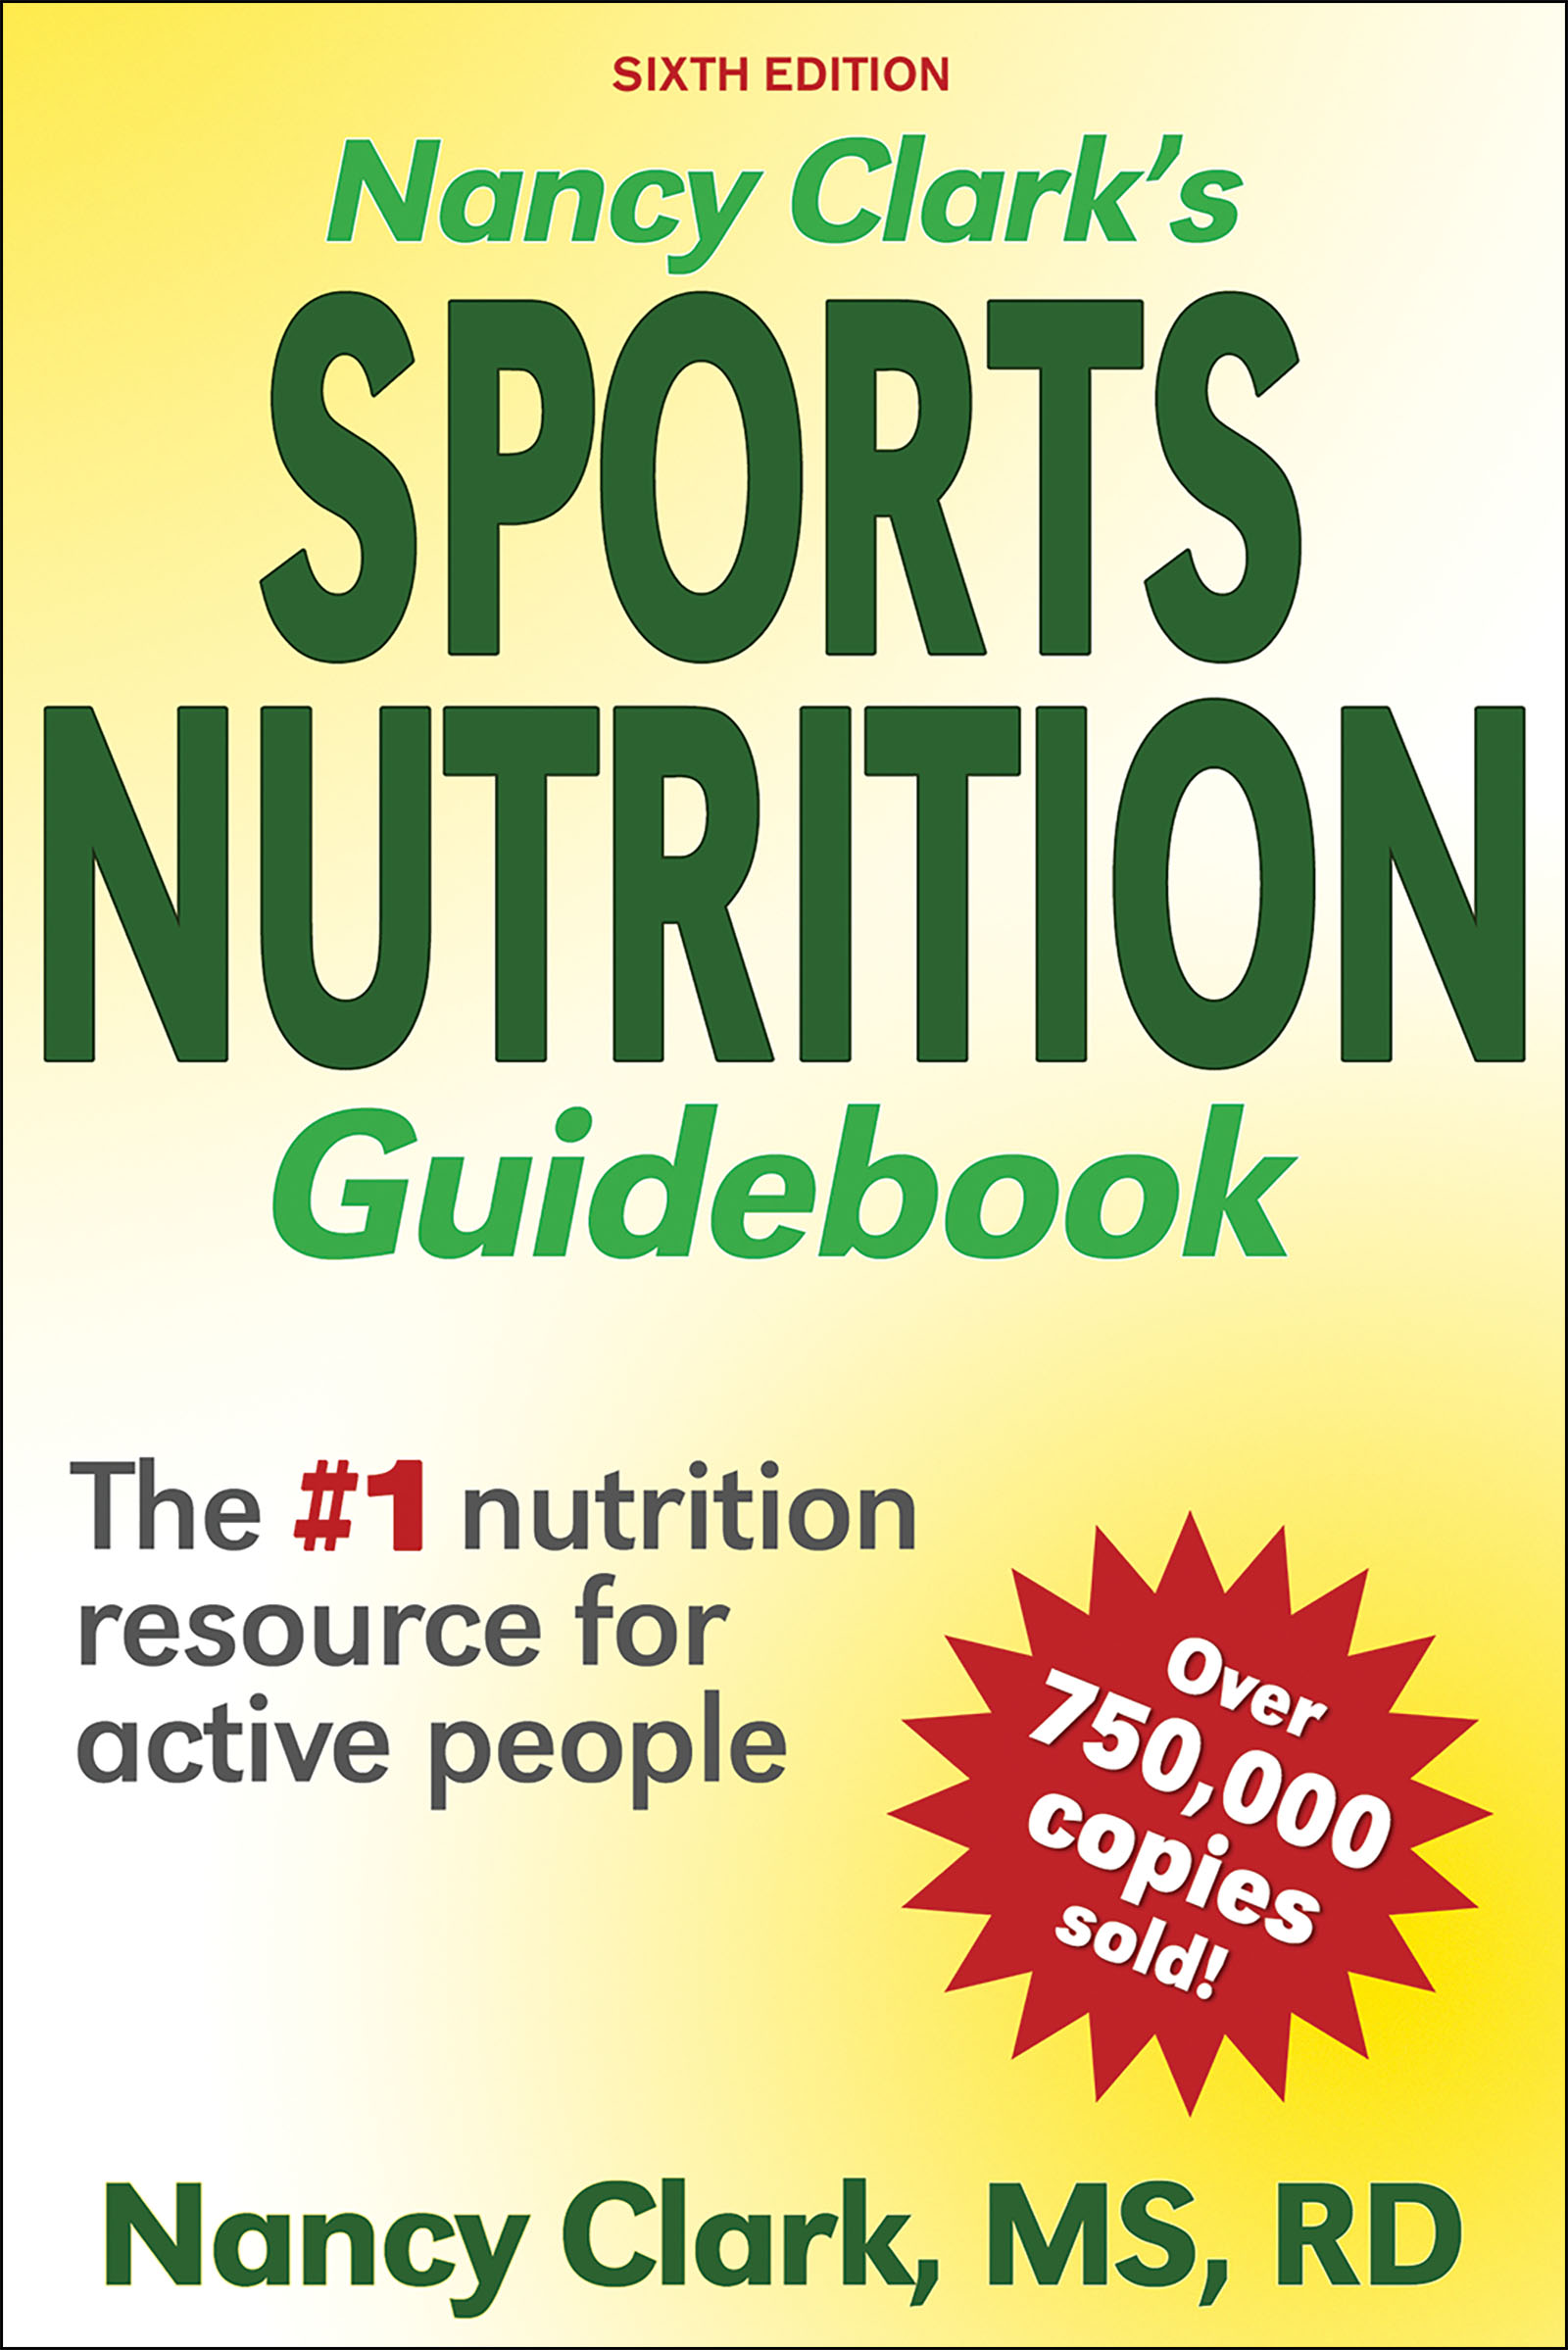 Nancy Clark's Sports Nutrition Guidebook-6th Edition